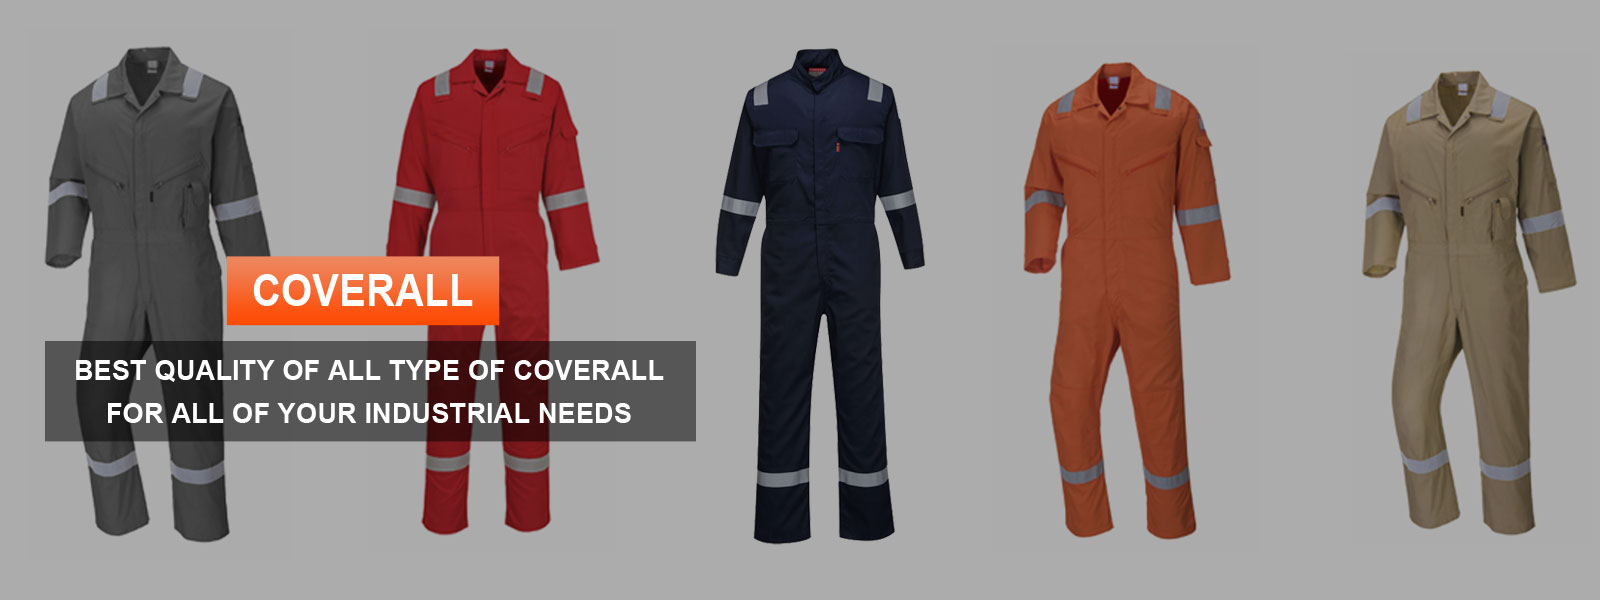 Coverall Manufacturers in Nigeria